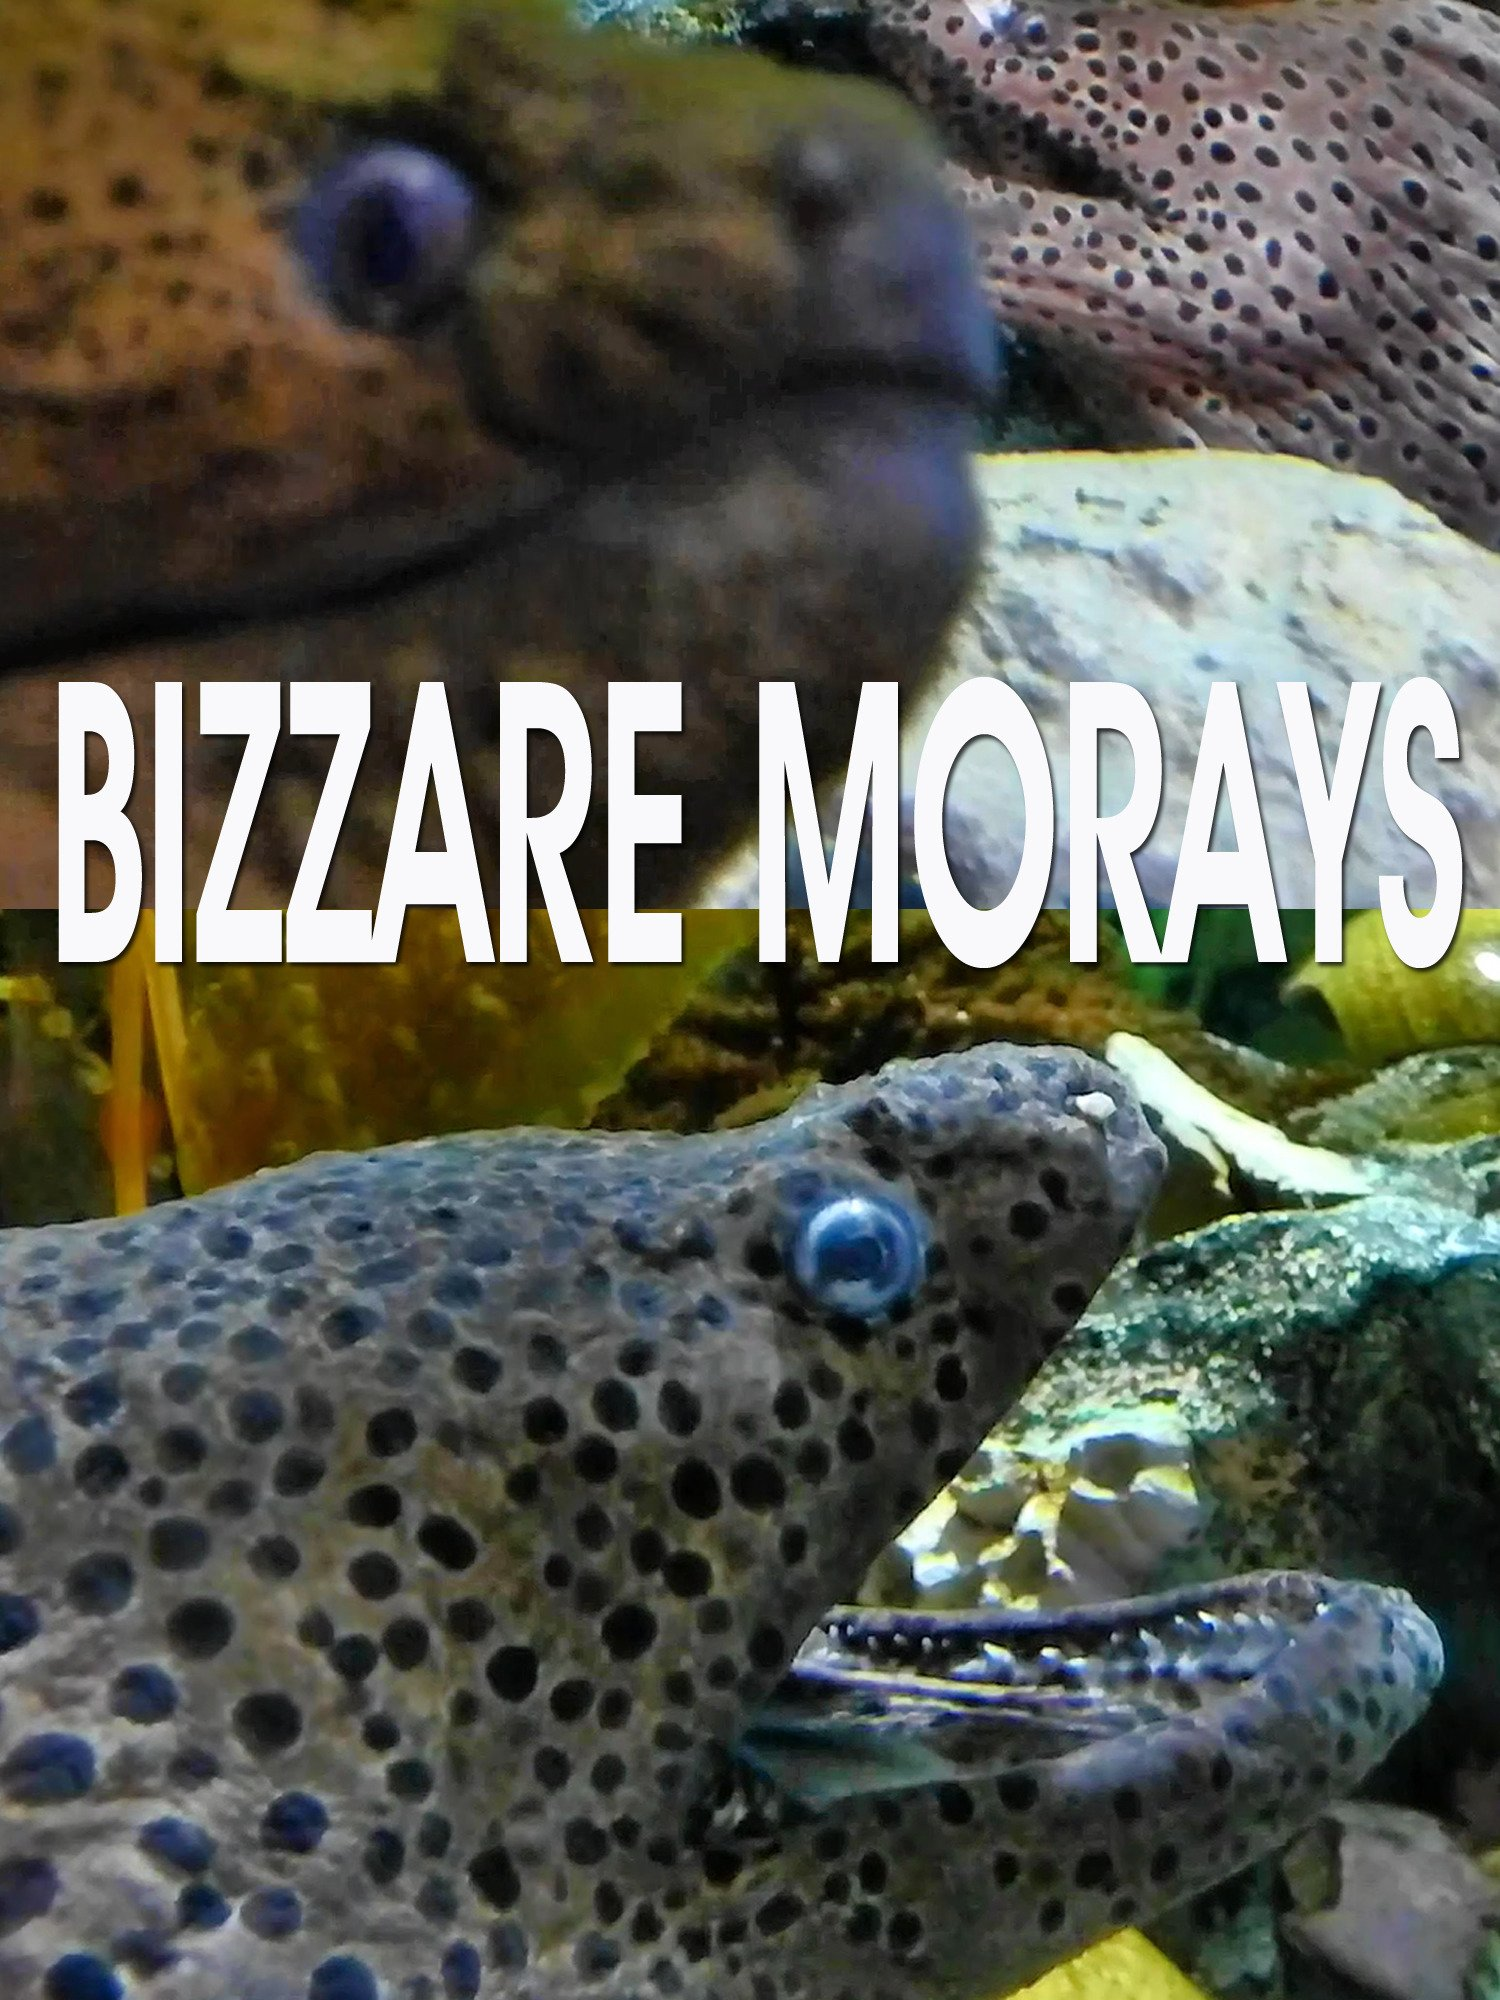 Bizzare morays